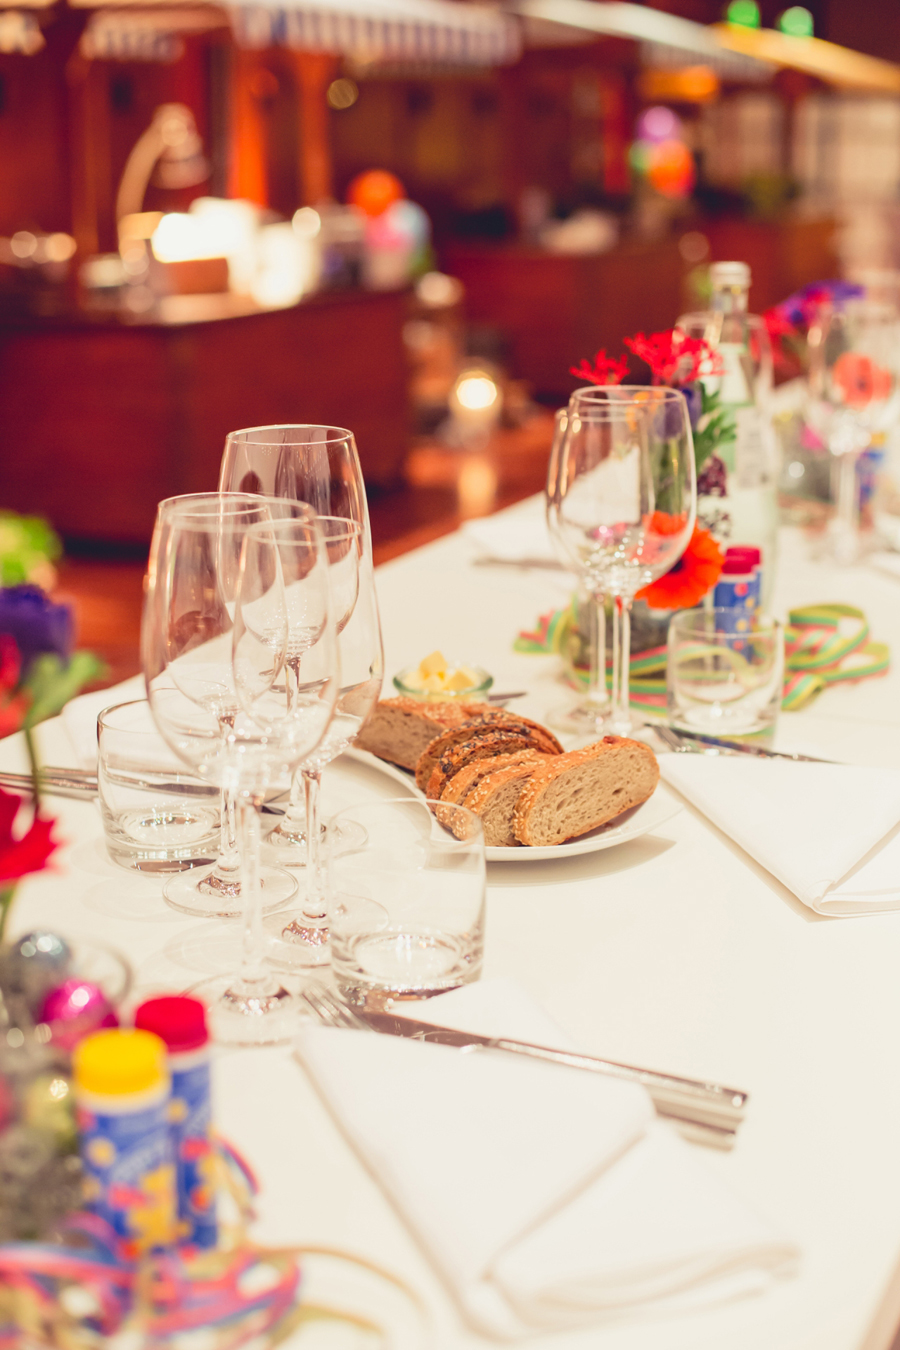 Weihnachtsmarkt | CATALOGNA COLOGNE CATERING